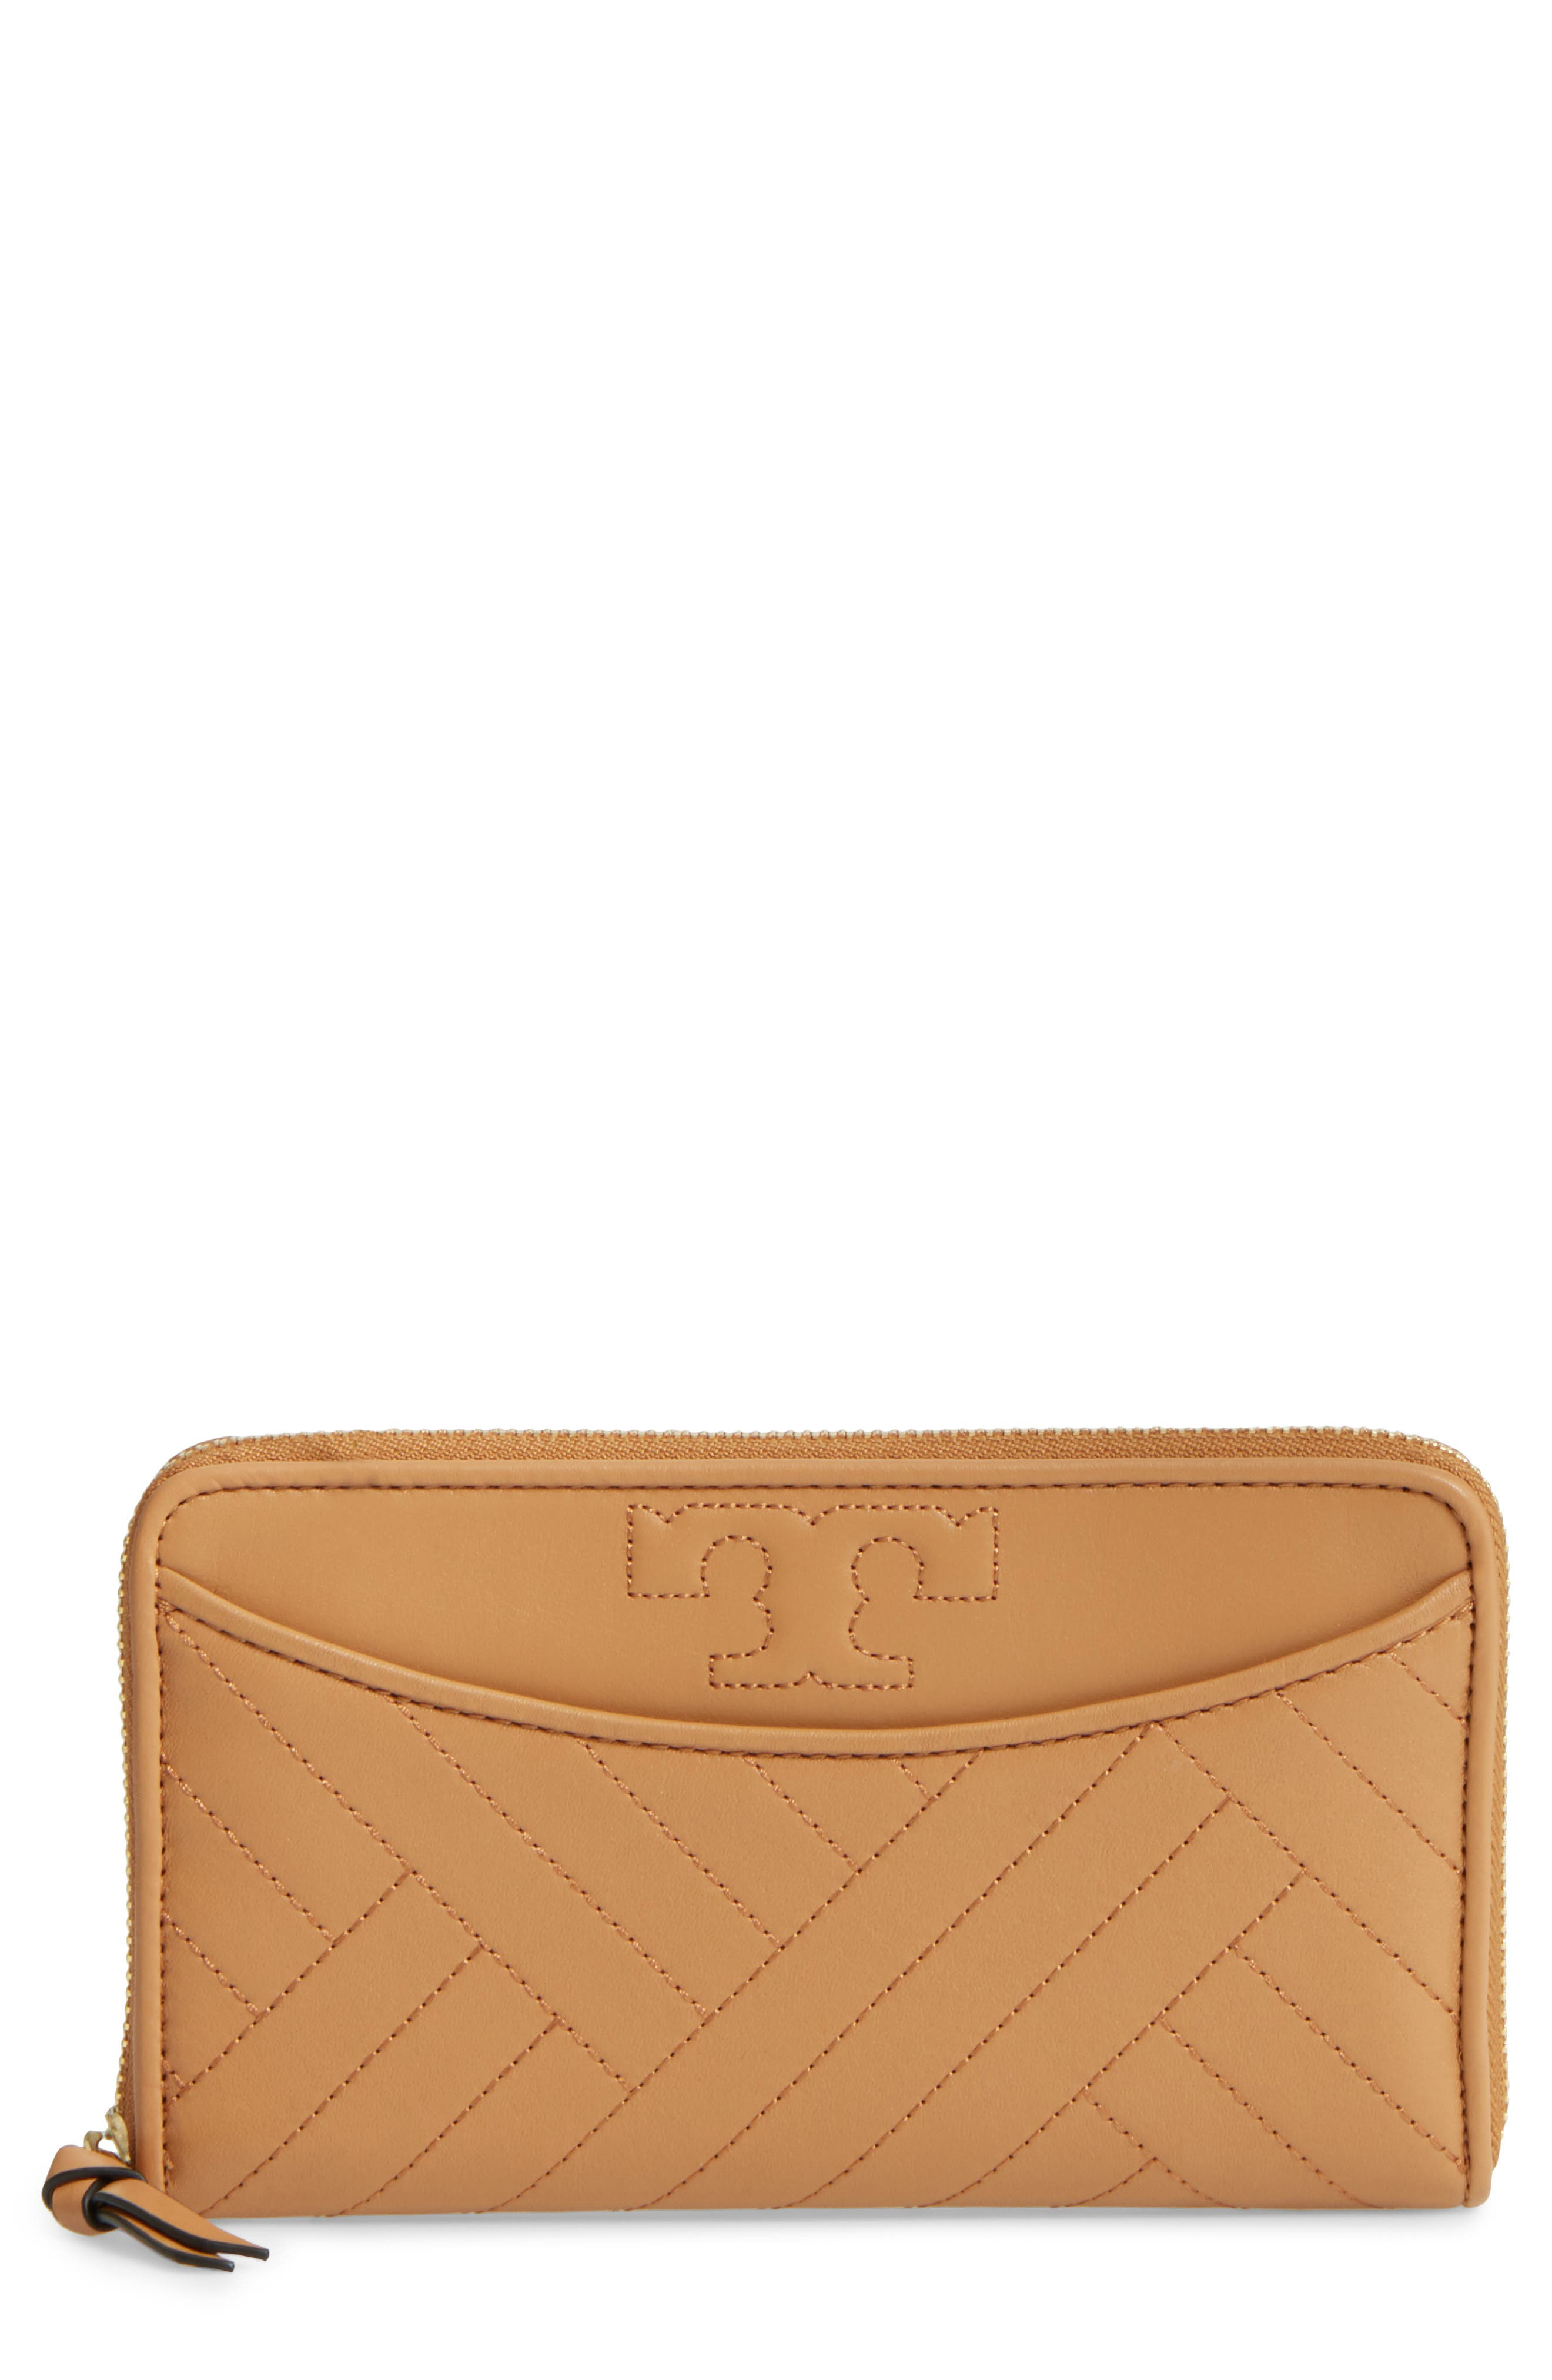 Tory Burch Alexa Quilted Leather Continental Wallet